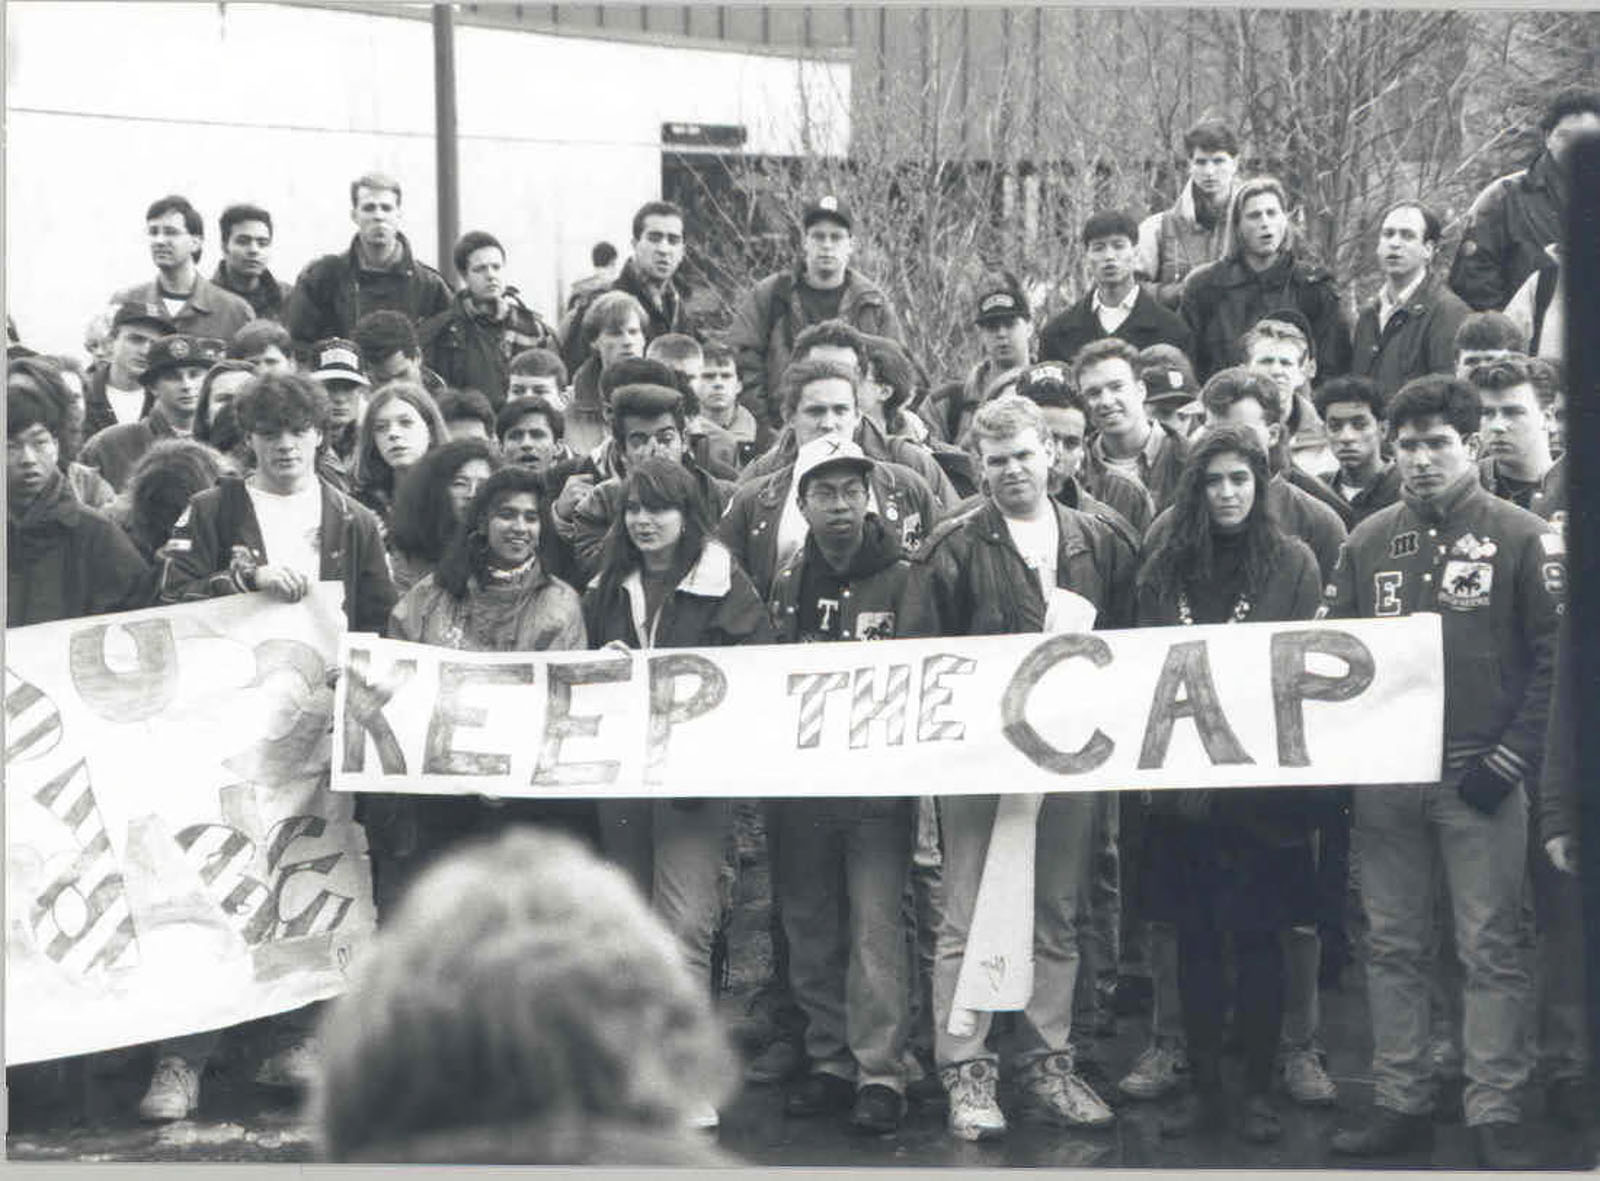 Students protest to keep the cap on domestic tuition imposed by the provincial government in the 1990s. UBC has announced their intent to ask the province to eliminate the cap so domestic students would be subject to the same process of tuition increases as international ones are currently.